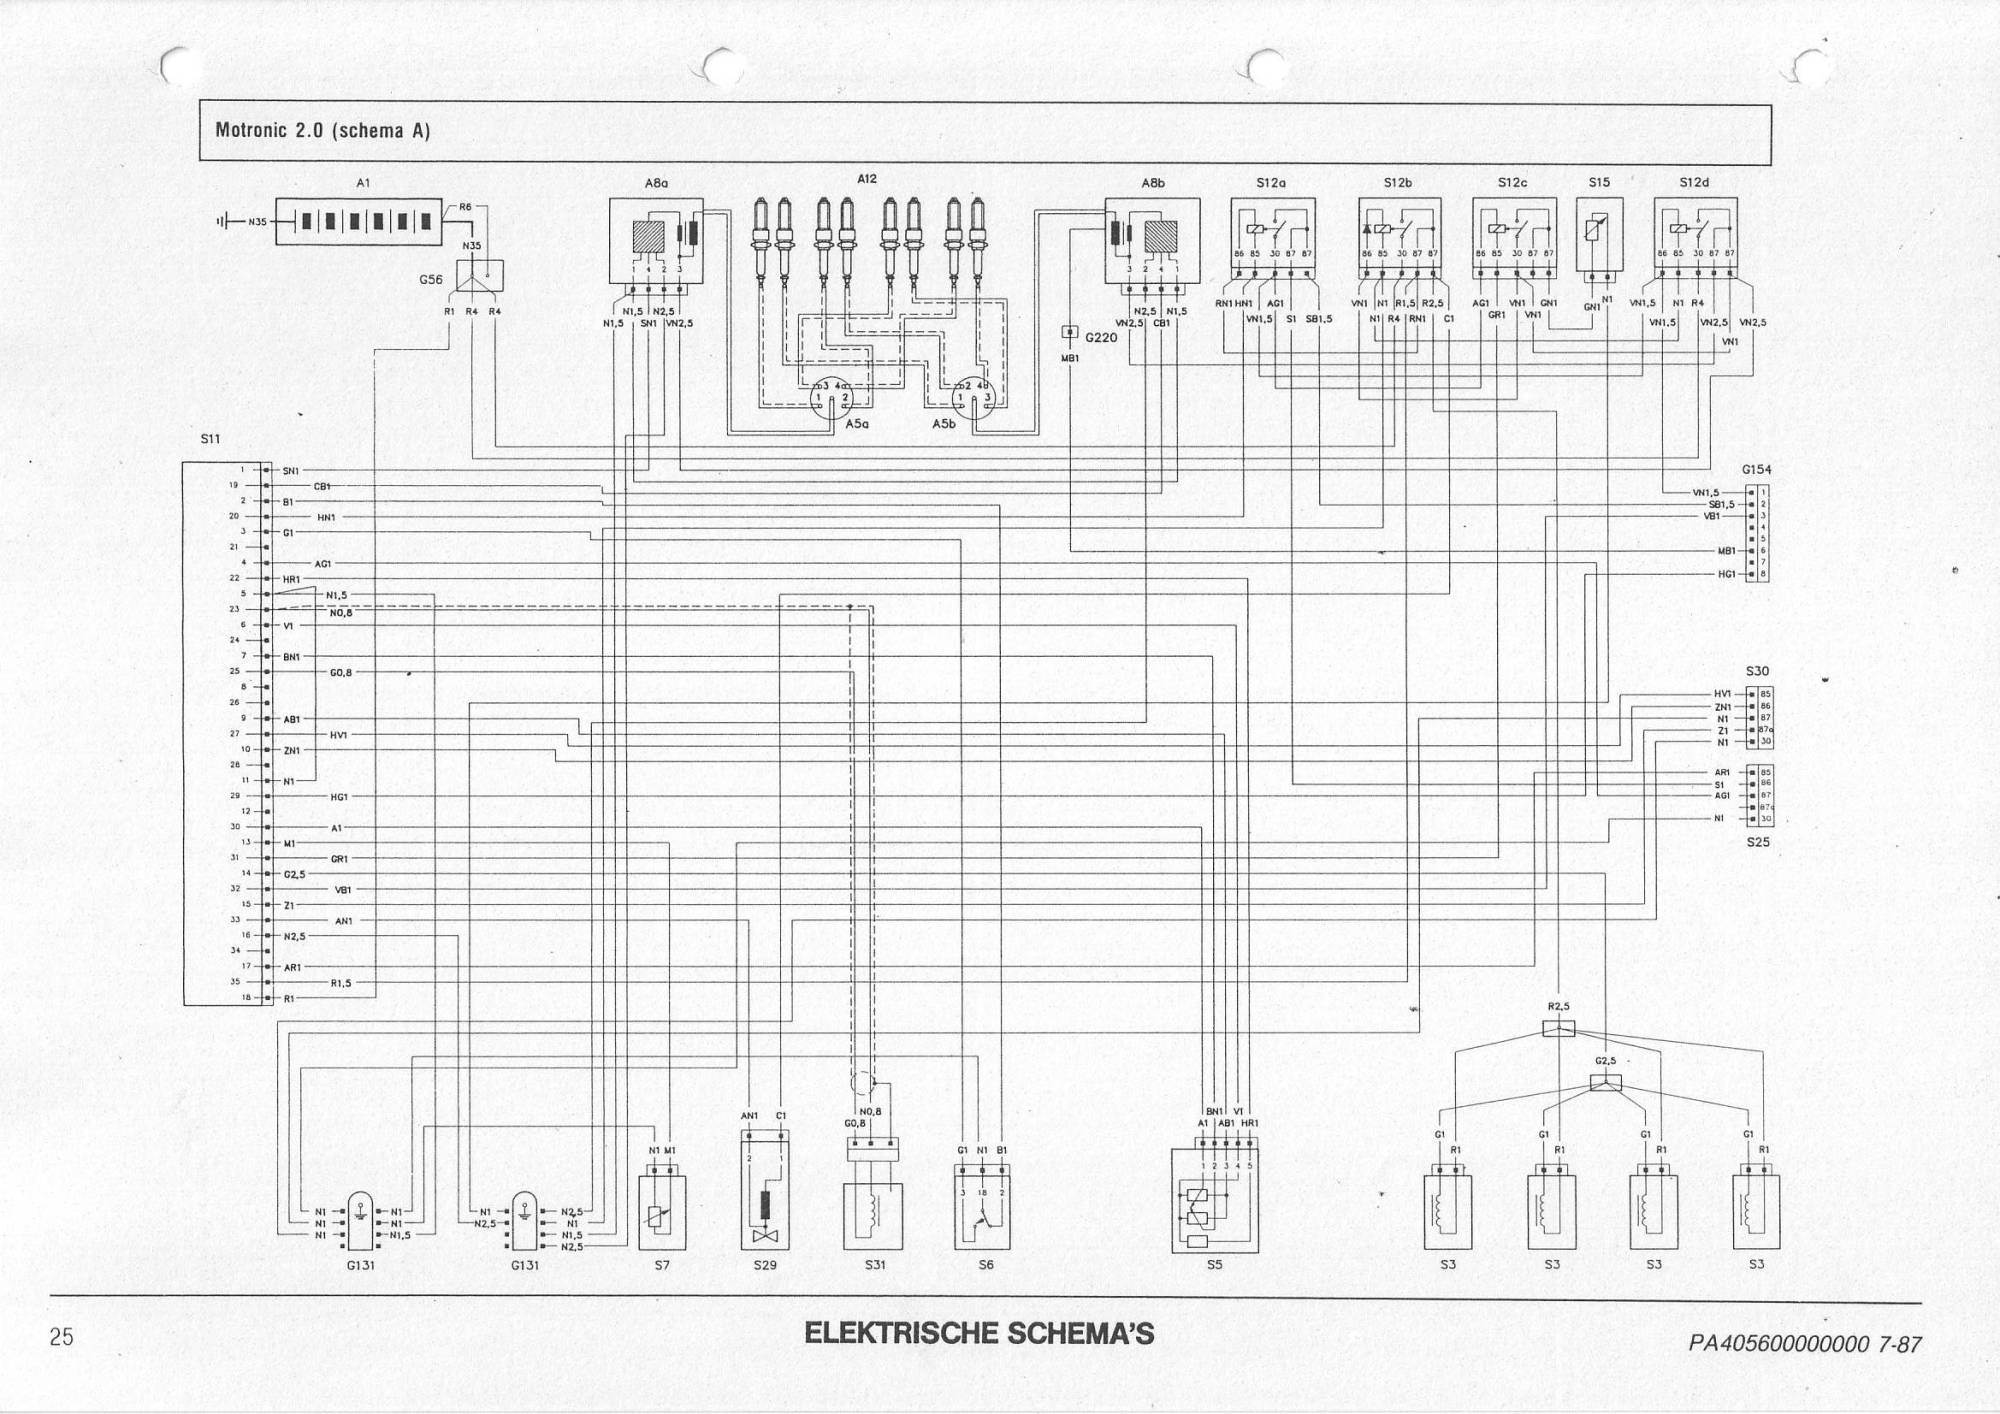 hight resolution of injectors won t open on my 164 ts alfa romeo bulletin board forums taurus alfa romeo 164 engine wiring diagram